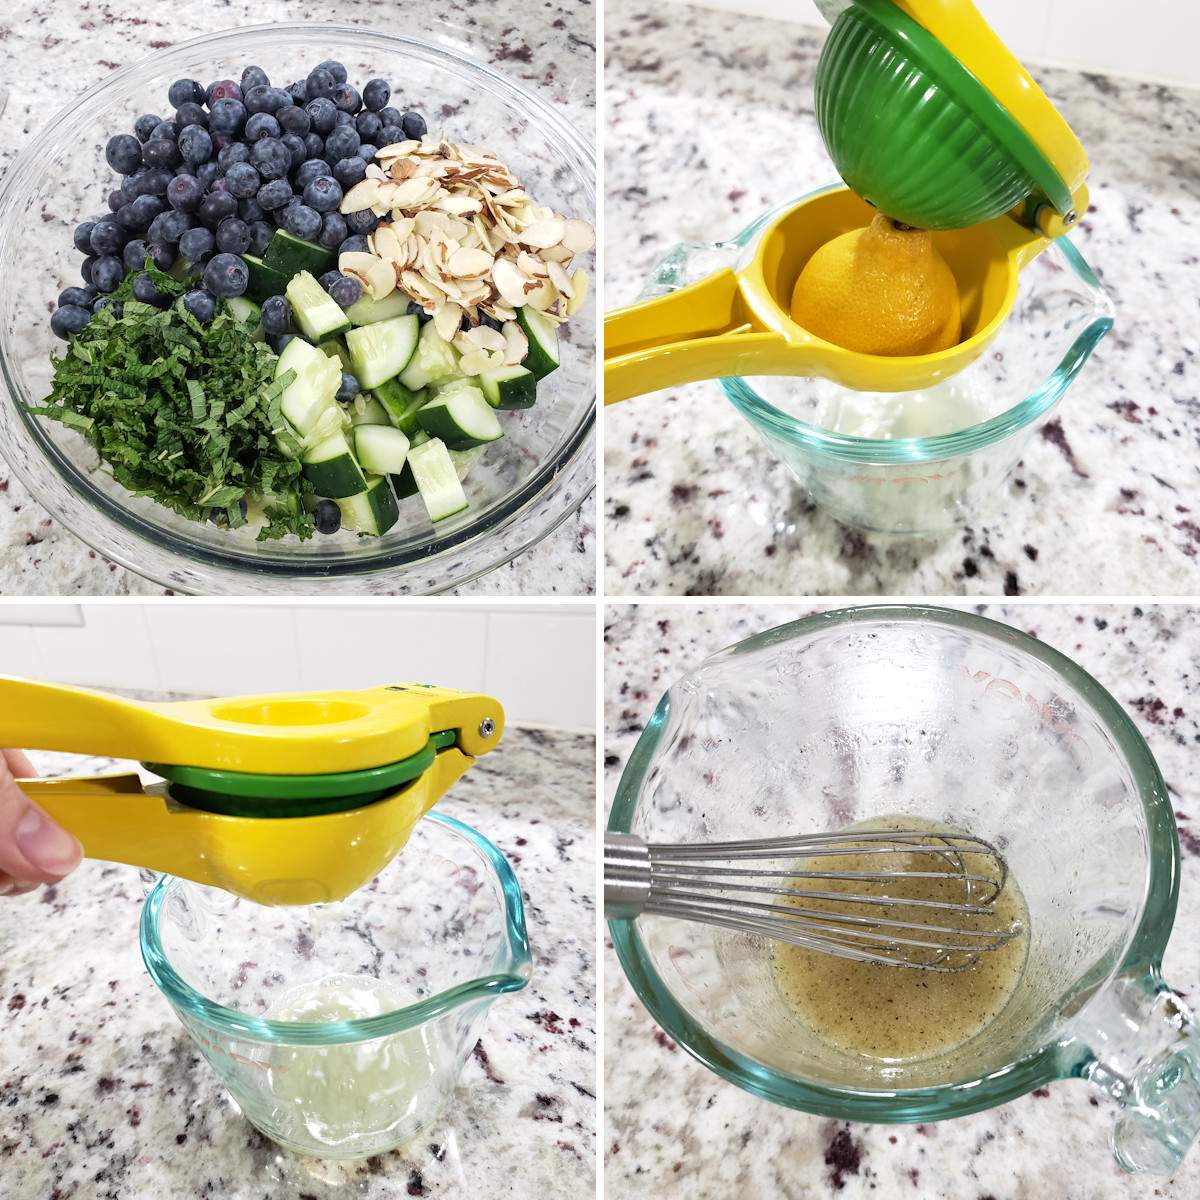 Squeezing a lemon and making salad dressing.